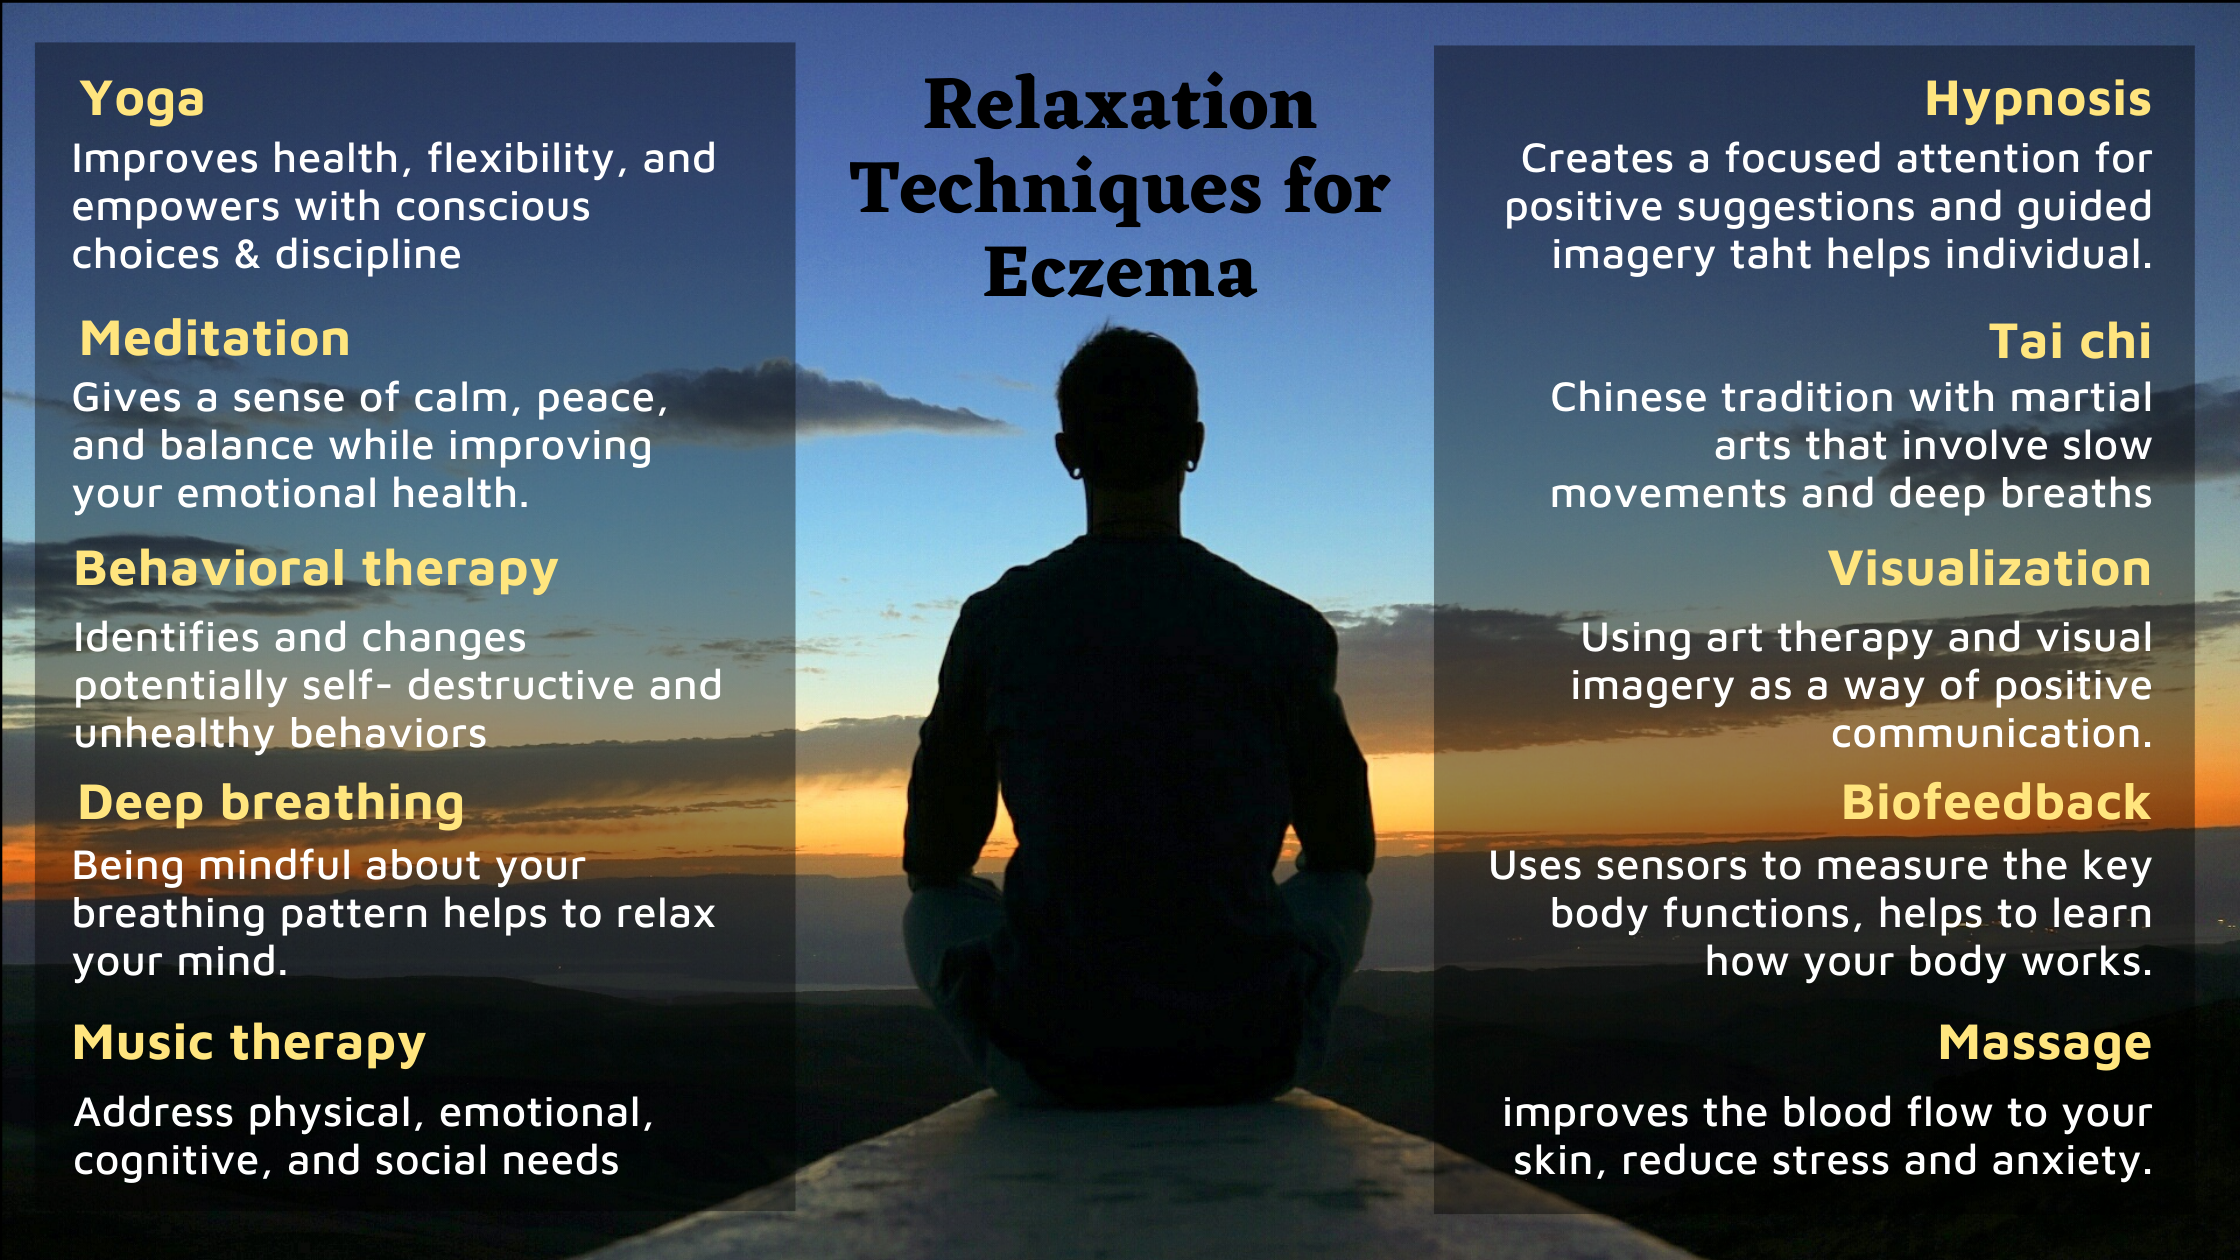 Relaxation Techniques for Eczema